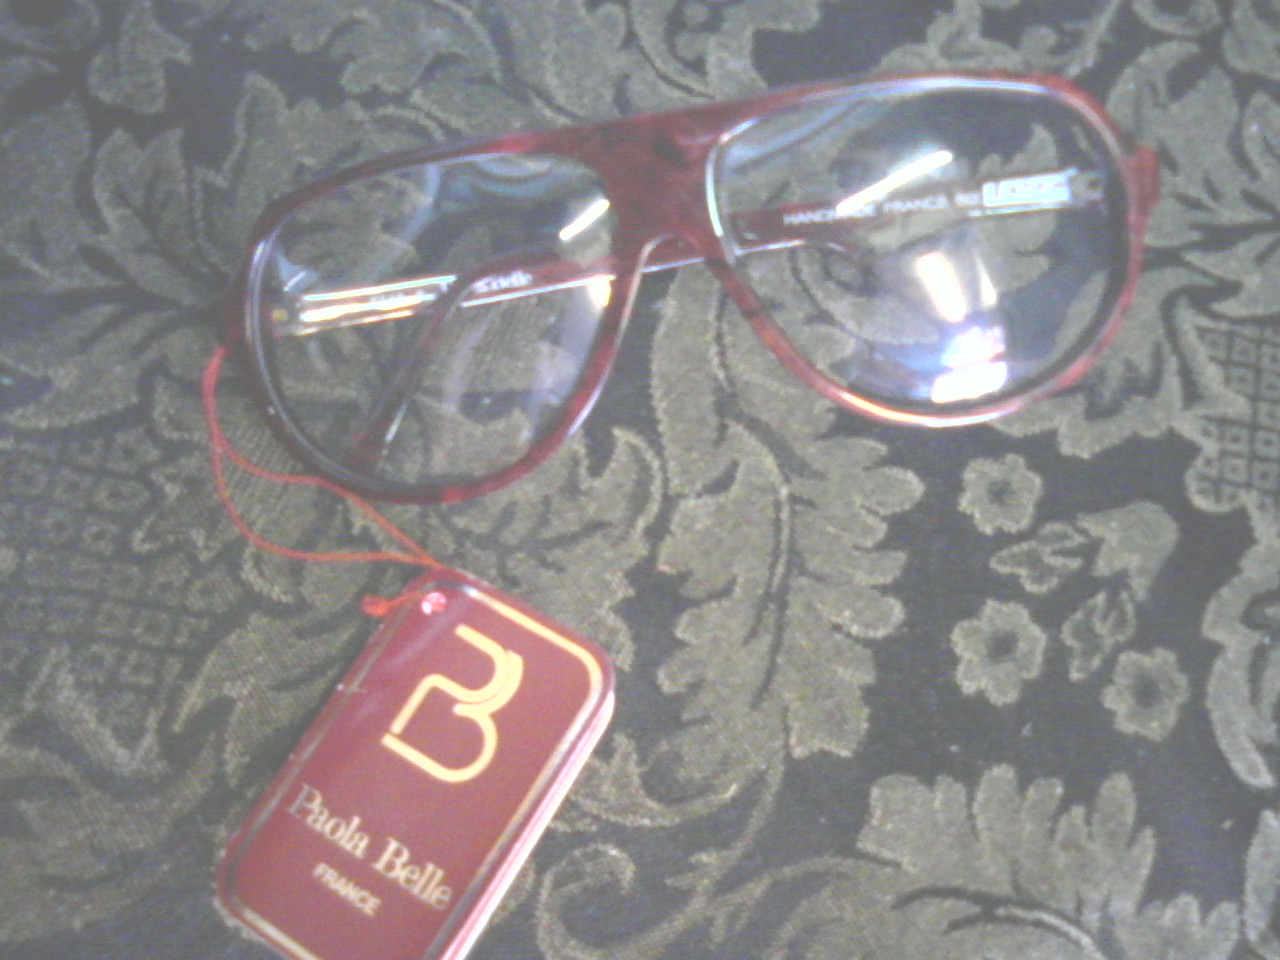 88807e1d89c9 These are vintage, mint condition, un-worn, French made Paola Belle specs  in a beautiful burgundy marble color. They have the PB gold colored detail  on ...